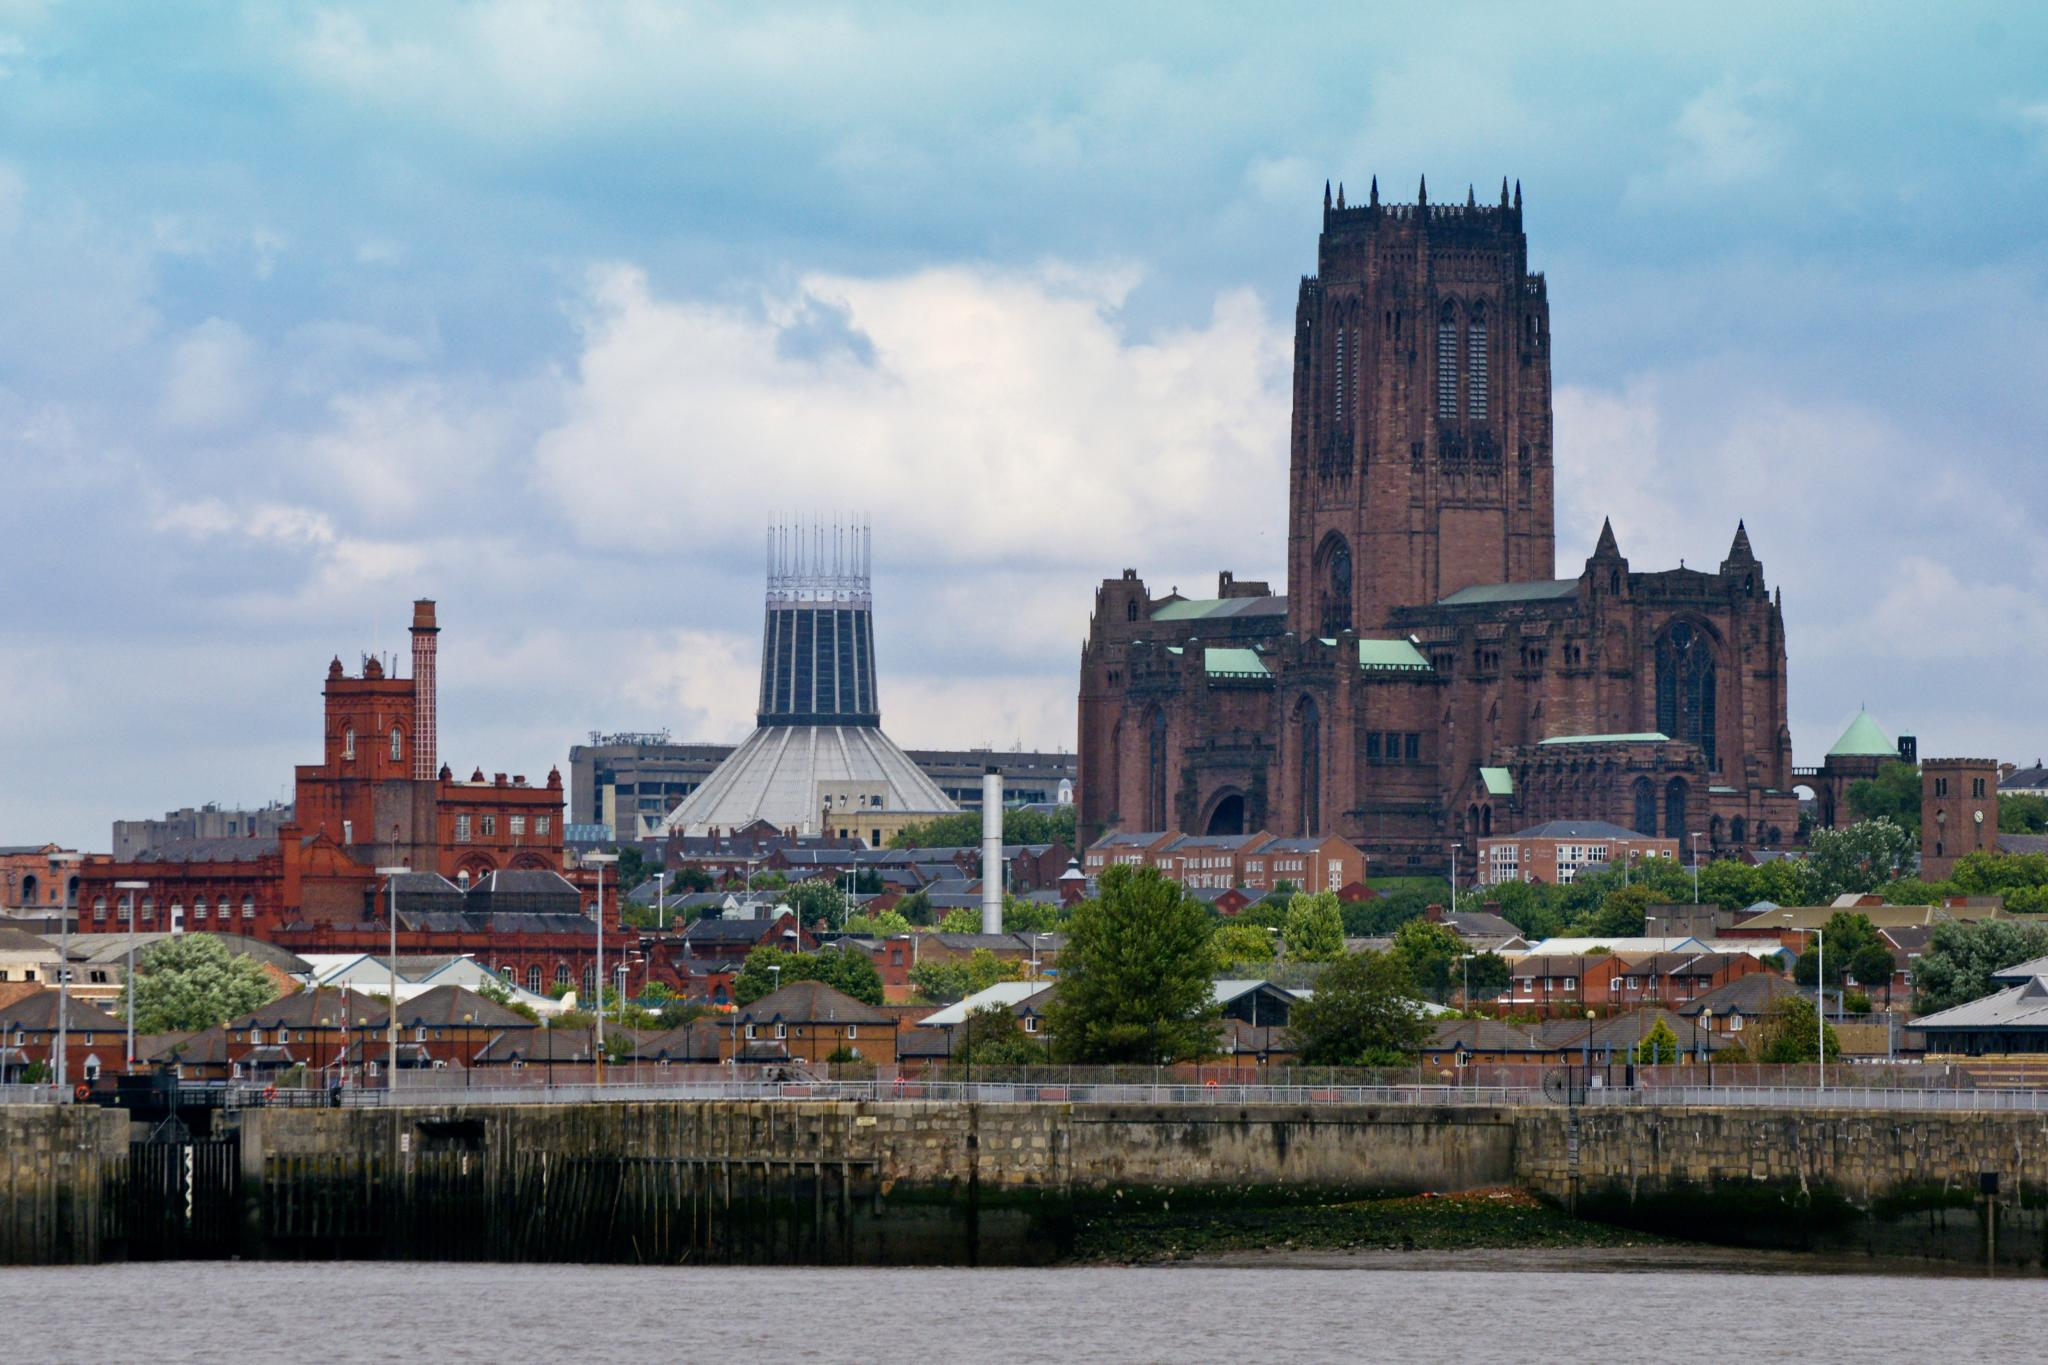 Liverpool - City in England - Thousand Wonders